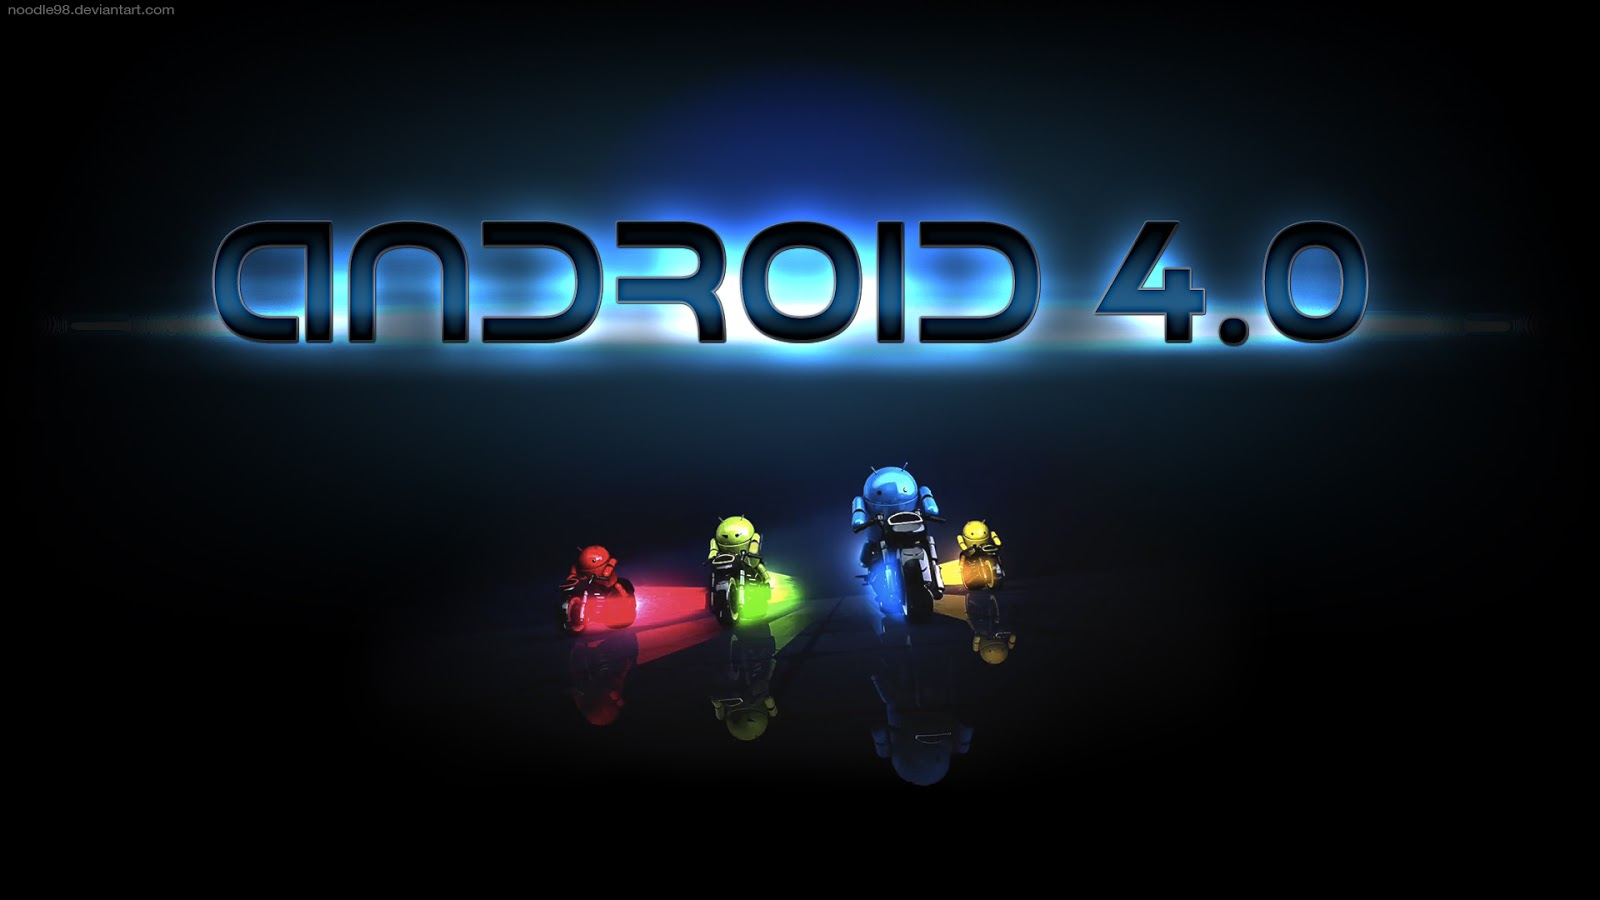 Android HD Wallpaper in 1080p Widescreen